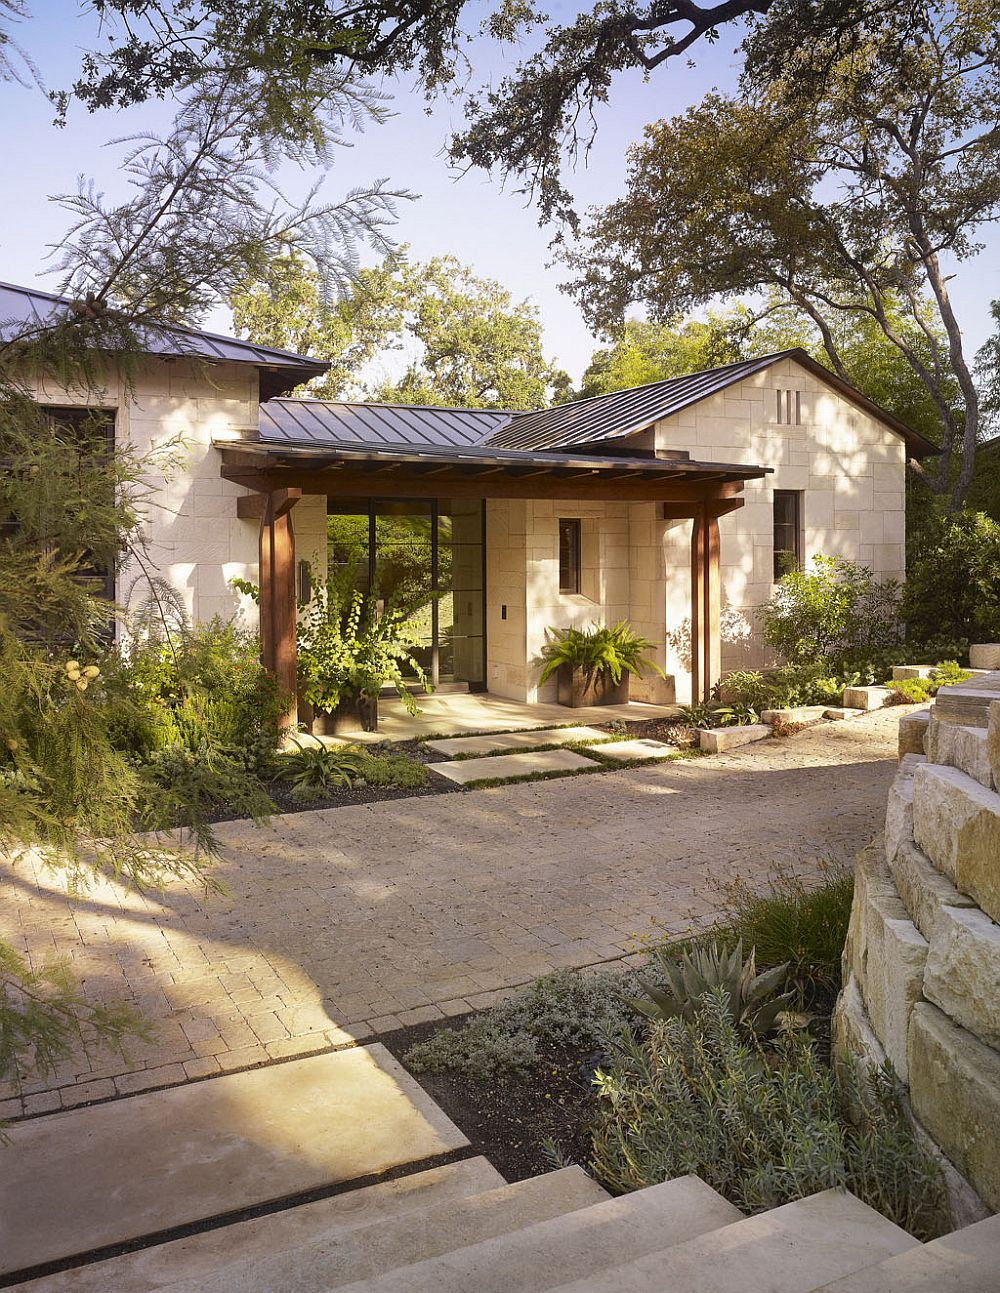 Facade-of-the-Lake-Austin-home-that-has-a-modern-classic-vibe-thanks-to-its-distinct-Texas-style-43443